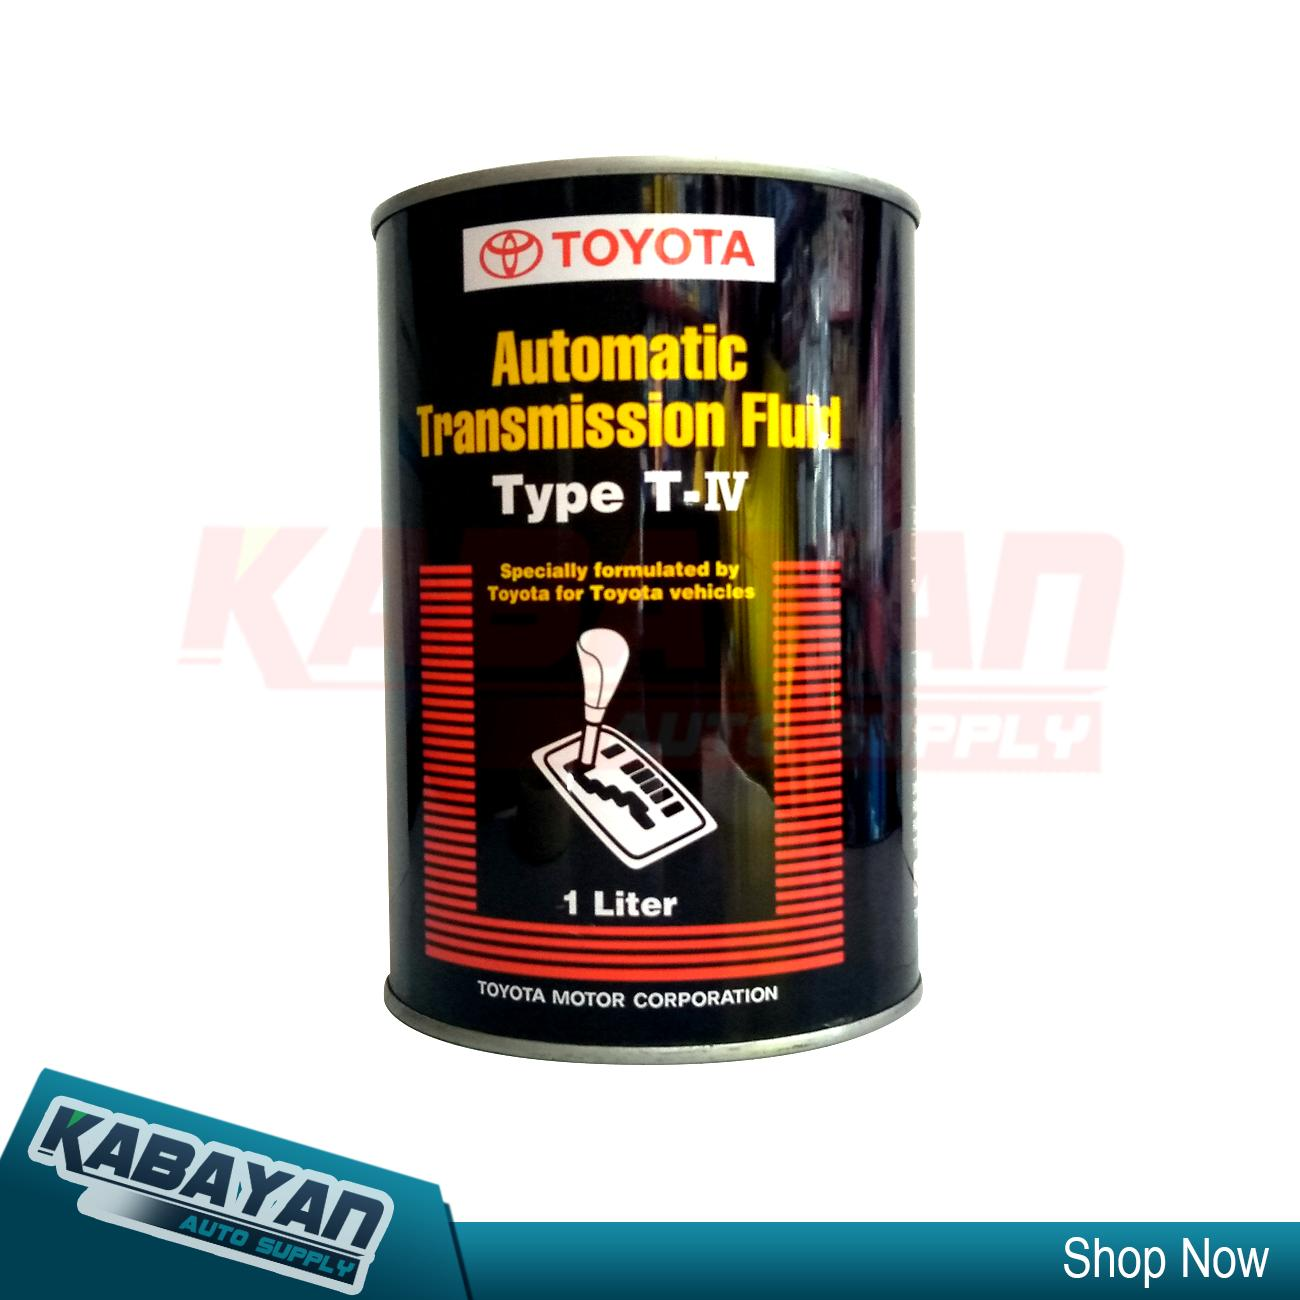 Power Steering Fluids for sale - Power Steering Oil online brands